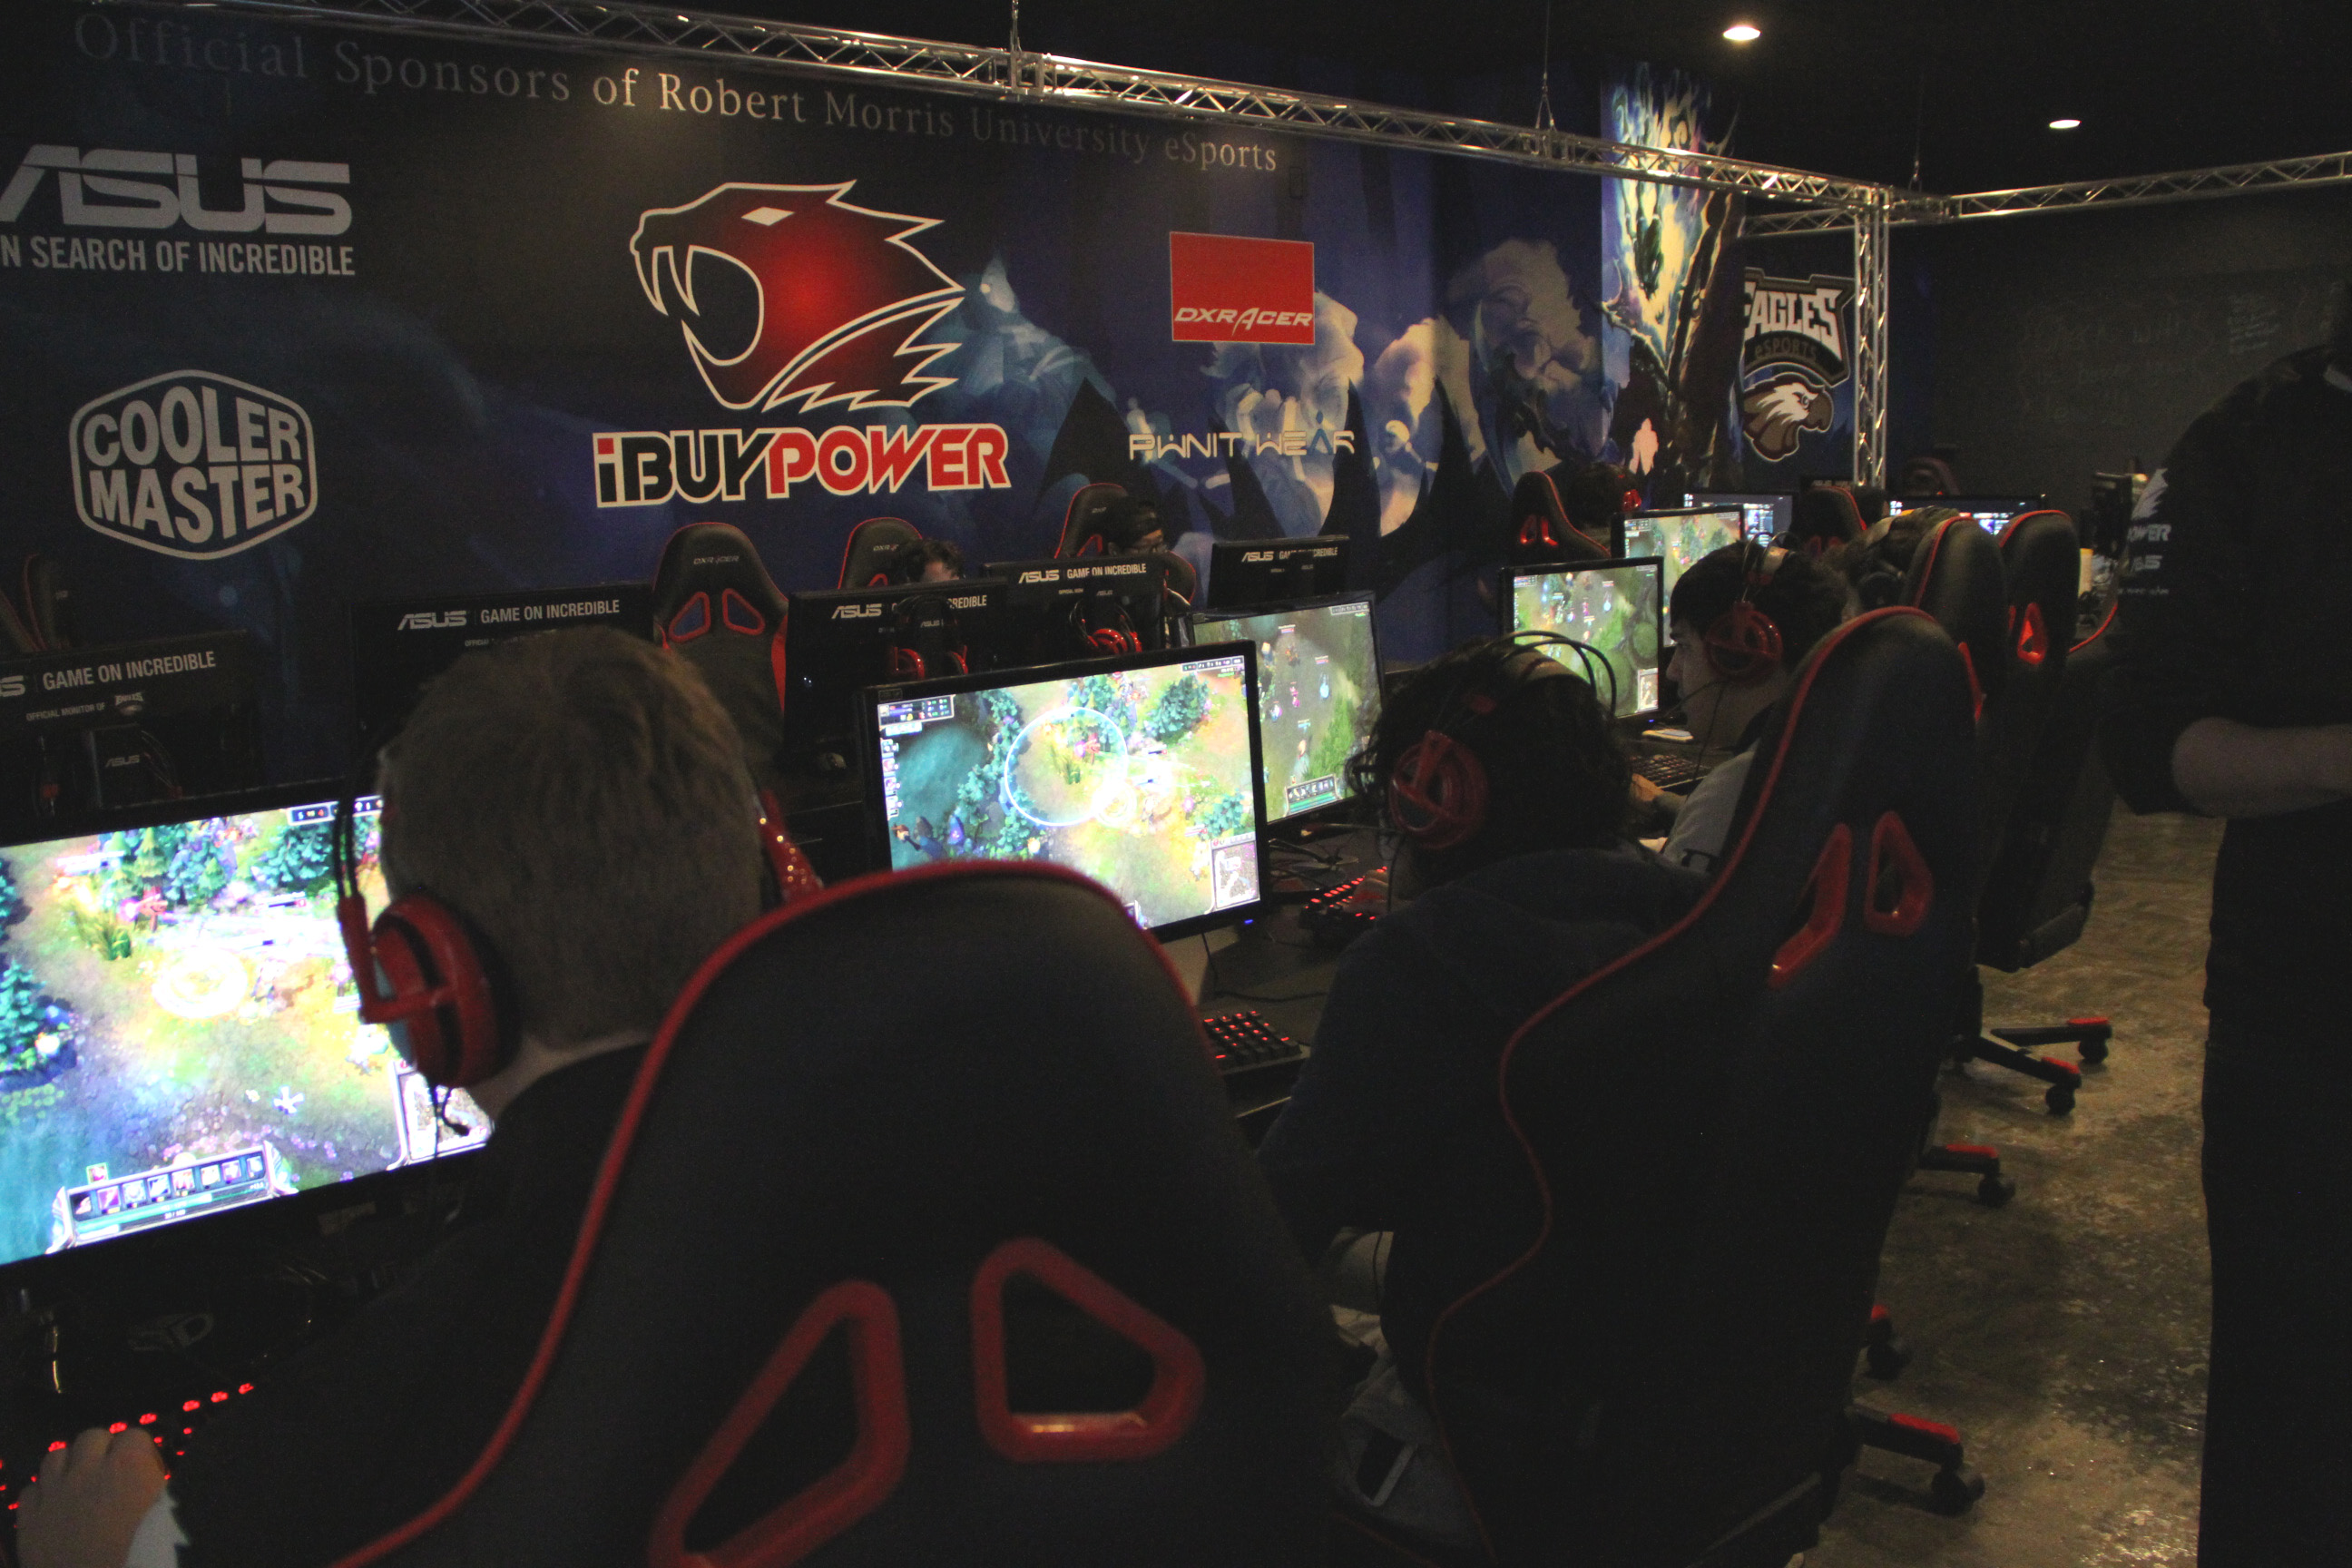 Robert Morris University >> Robert Morris University-Illinois Partners with iBuyPower To Build Top Class eSports Facility